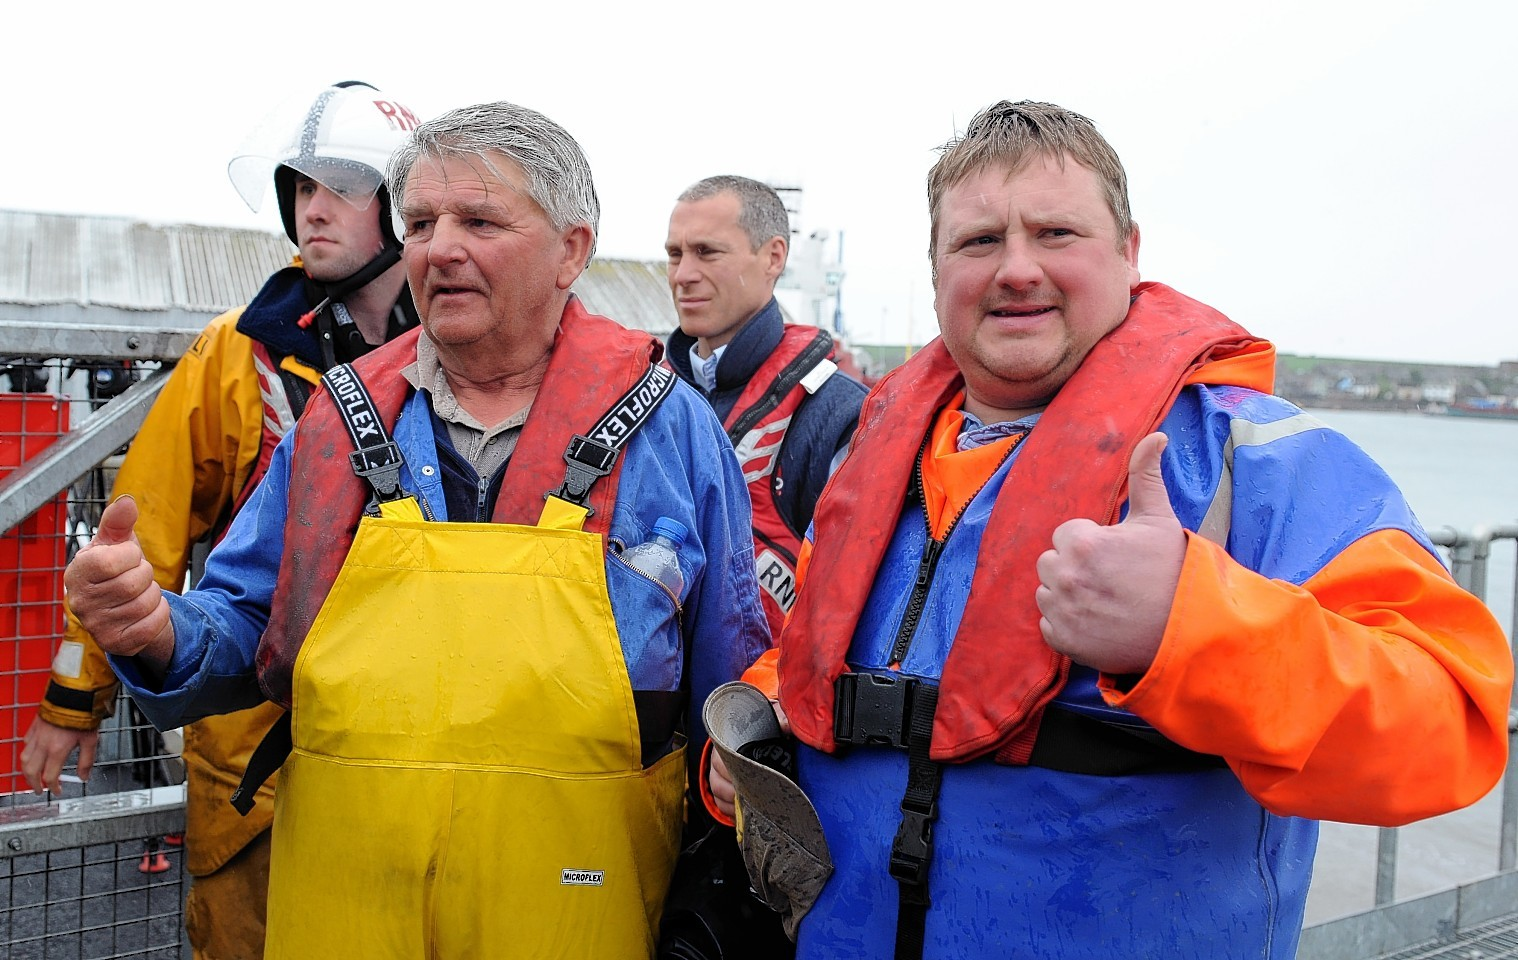 Gourdon fishermen Jim Reid and David Irvine in Montrose after their 48 hour ordeal at sea